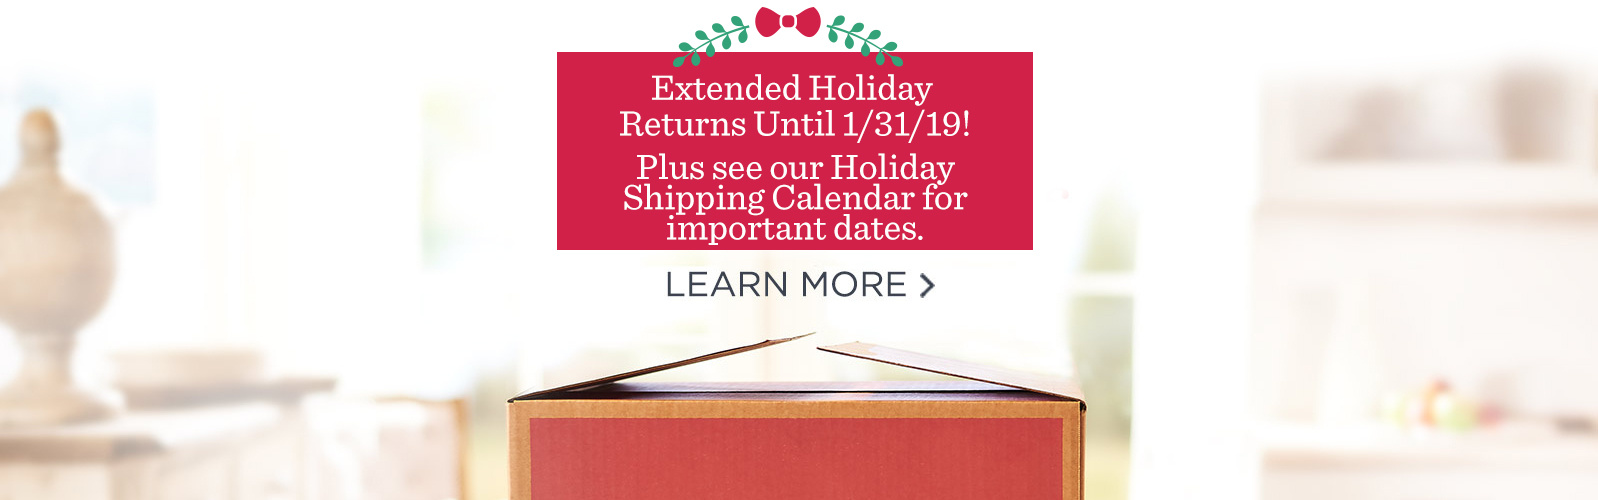 Extended Holiday Returns Until 1/31/19!  Plus see our Holiday Shipping Calendar for important dates.  Learn More >